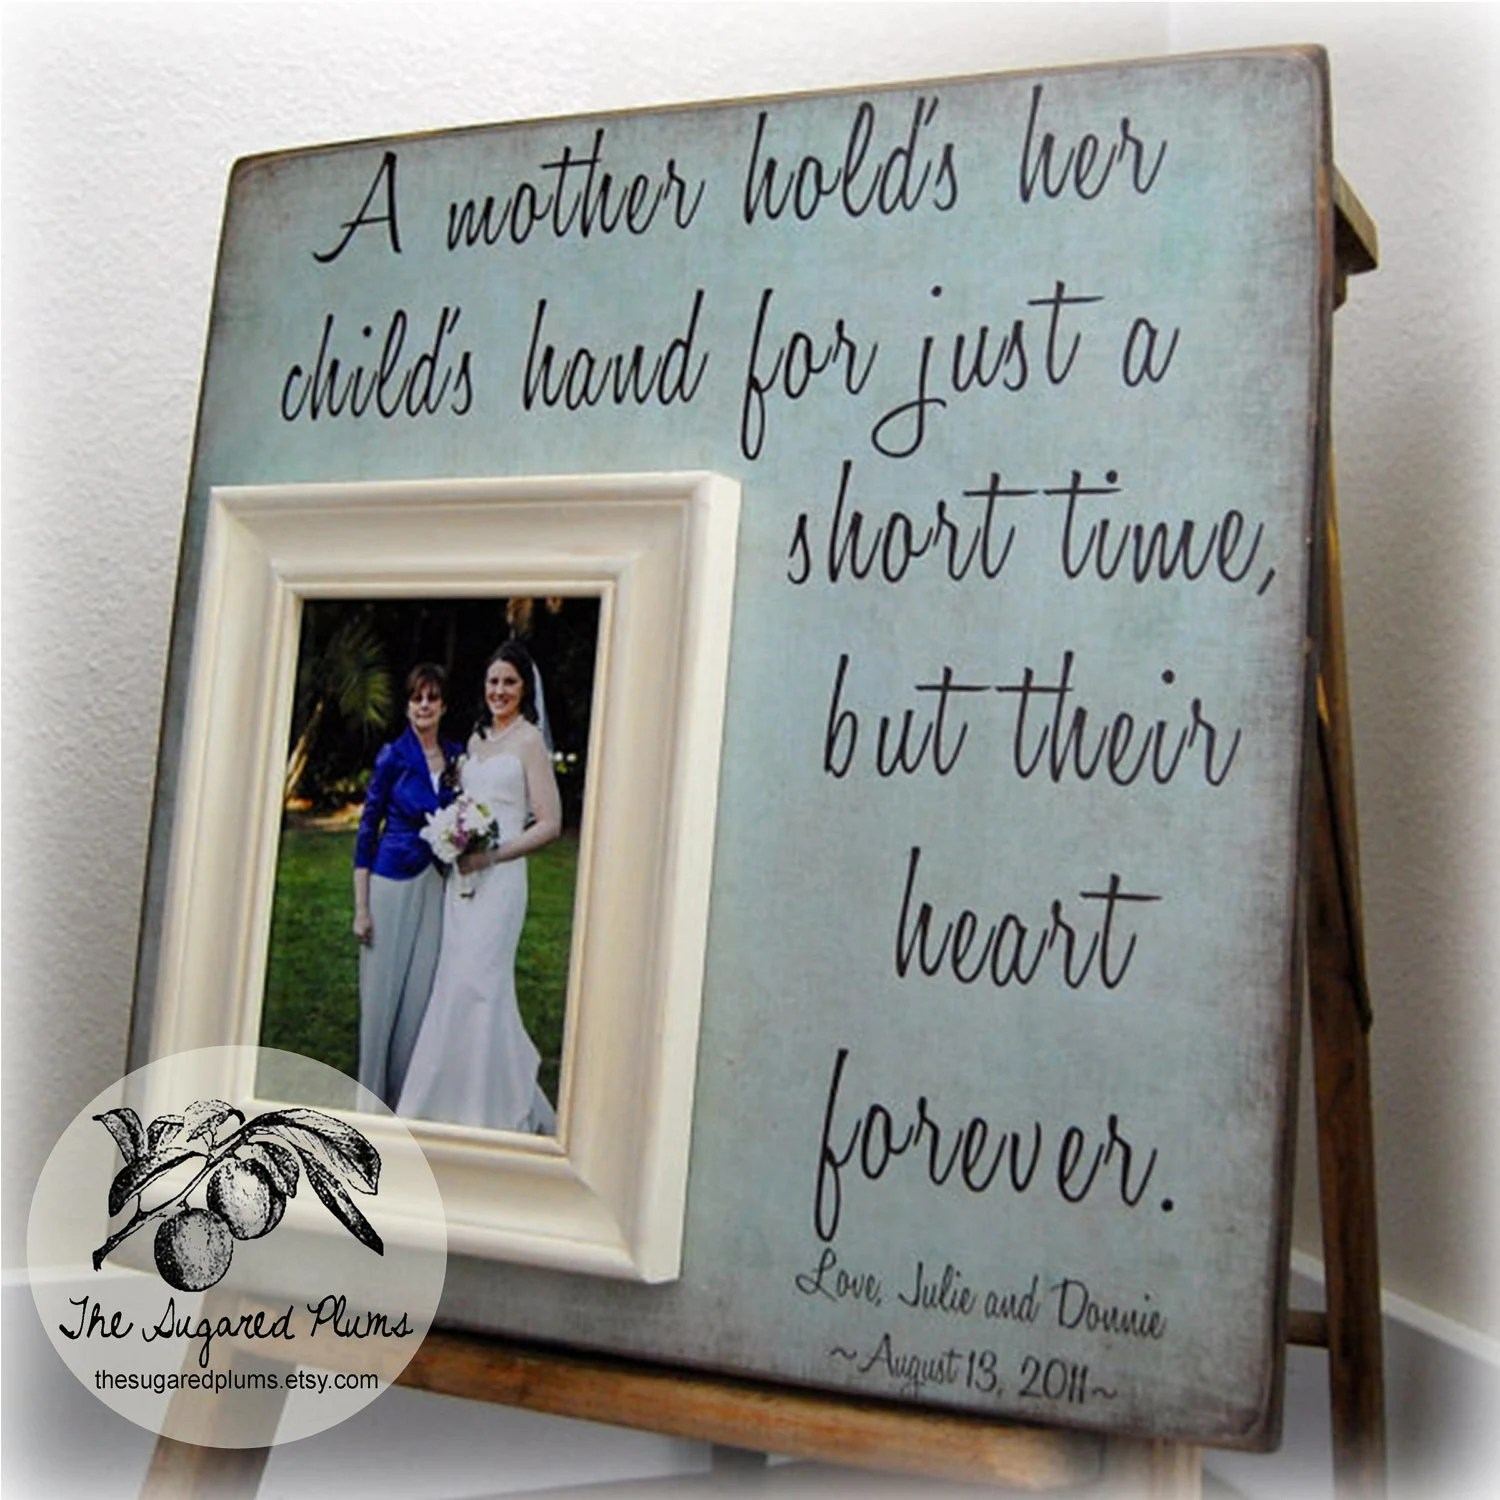 MOTHER Of THE BRIDE Gift For Mother of the Bride Personalized Picture Frame Wedding Gift Custom 16x16 A Mother Holds Mom Quote Thank You